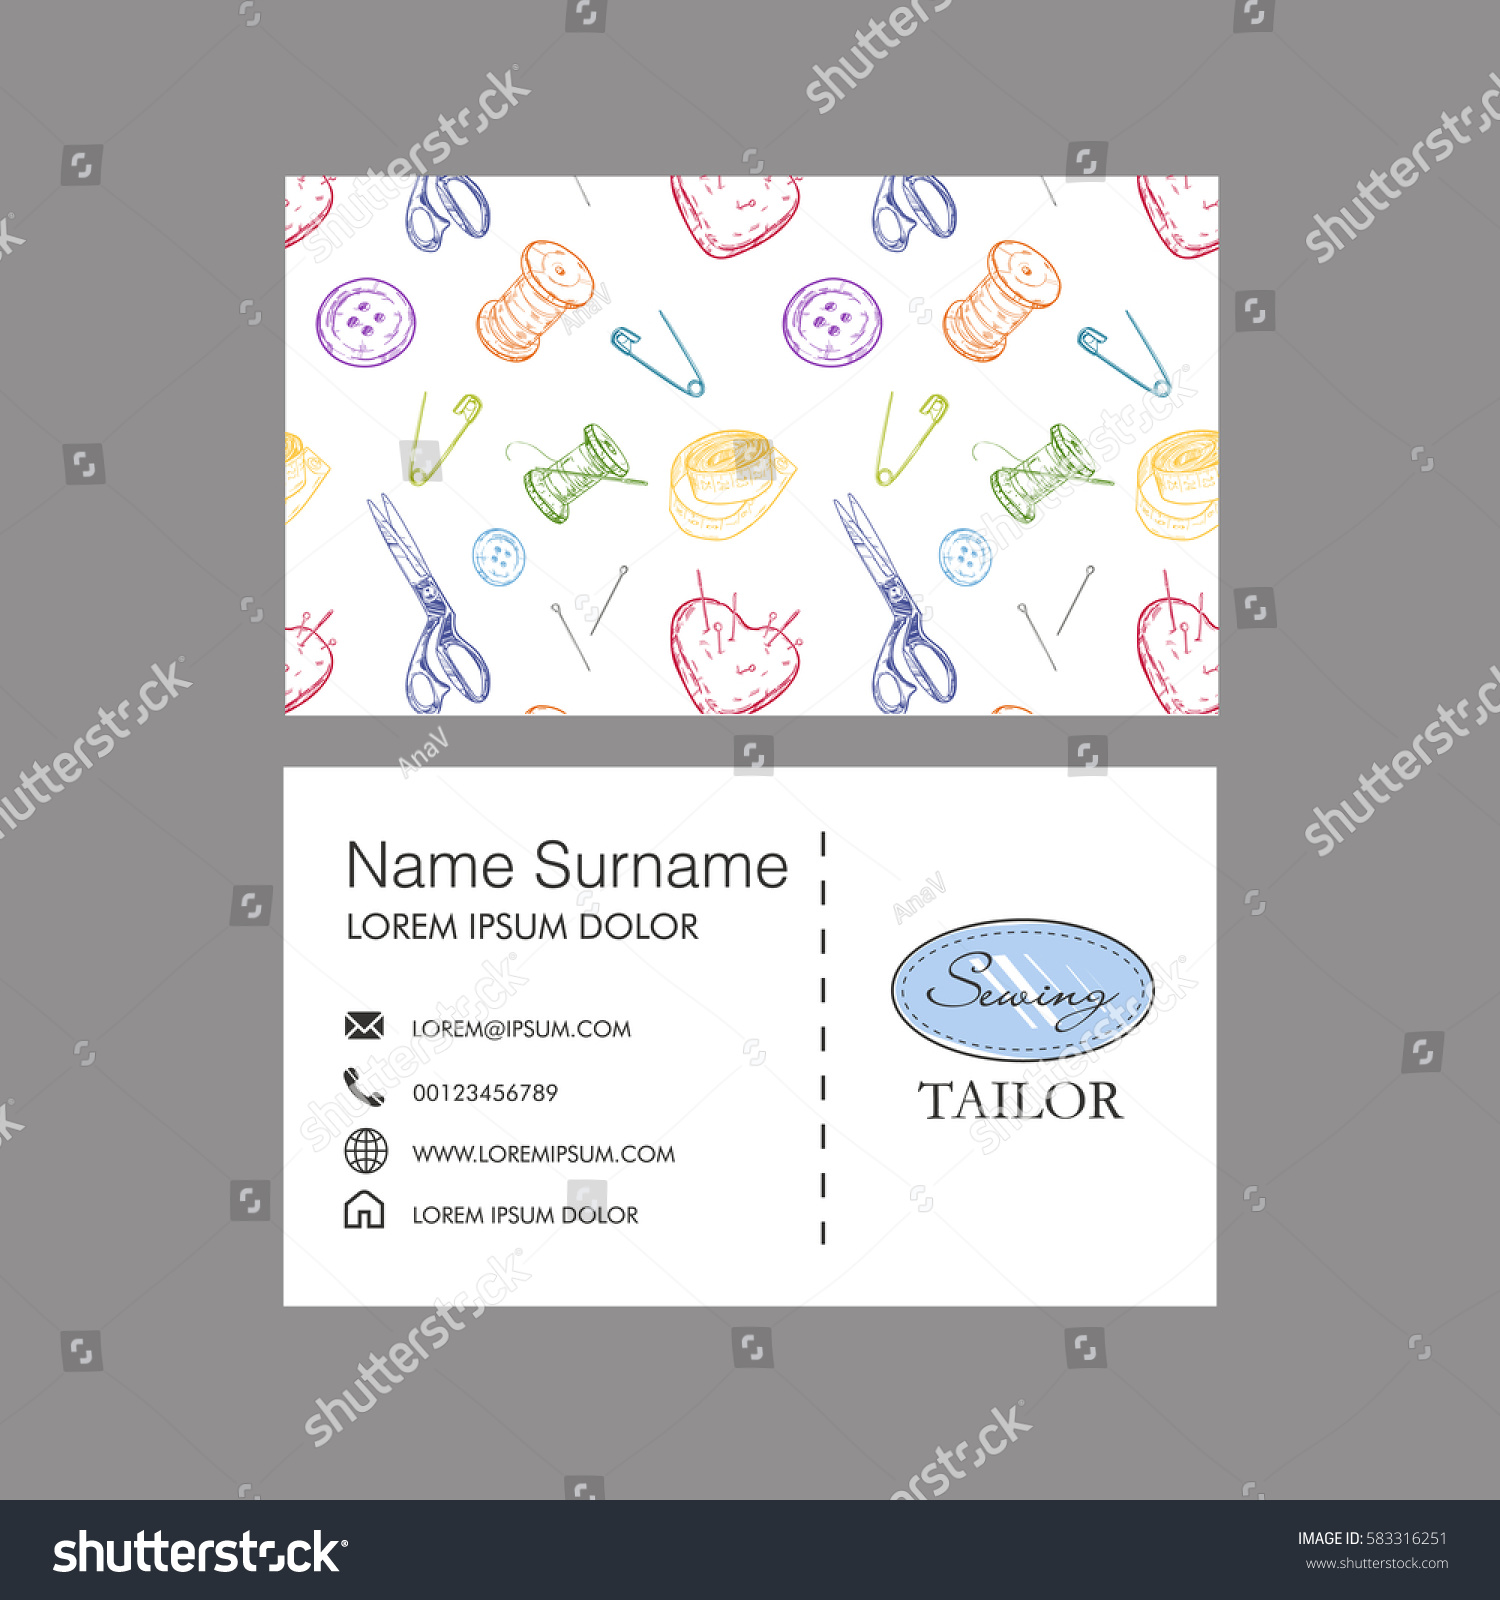 Sewing tailor concept business card vector stock vector 583316251 sewing tailor concept business card vector template magicingreecefo Image collections